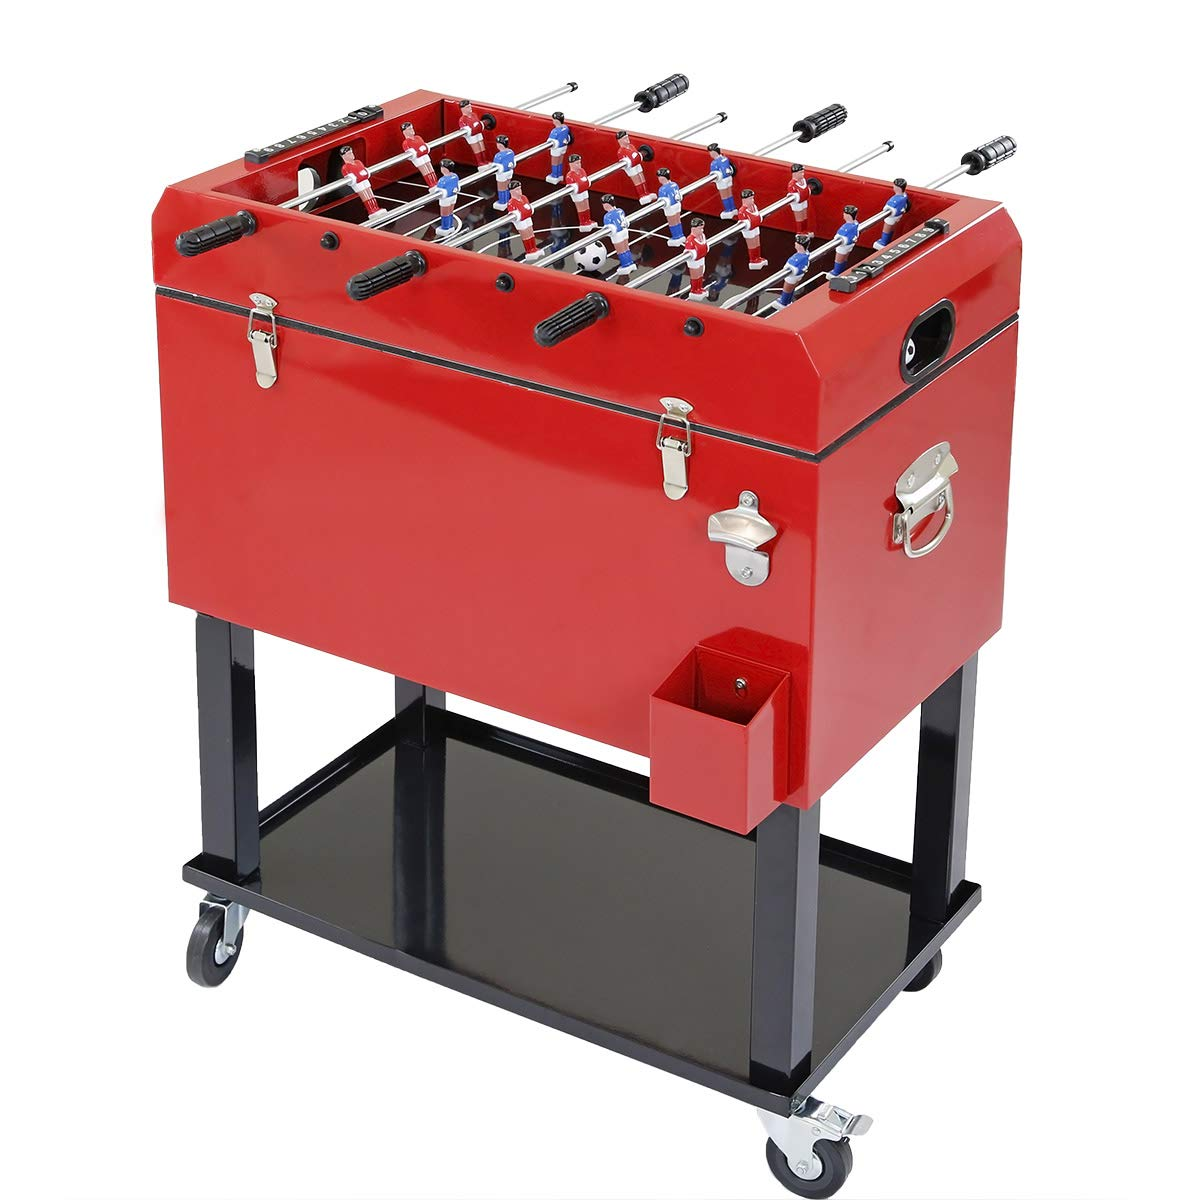 Clevr 68 Quart Qt Red Patio Cooler Ice Chest with Foosball Table Top, Portable Patio Party Bar Cold Drink Rolling Cart on Wheels with Tray Shelf,17 Gallon/ 65L Outdoor Rolling Beverage Cart by Clevr